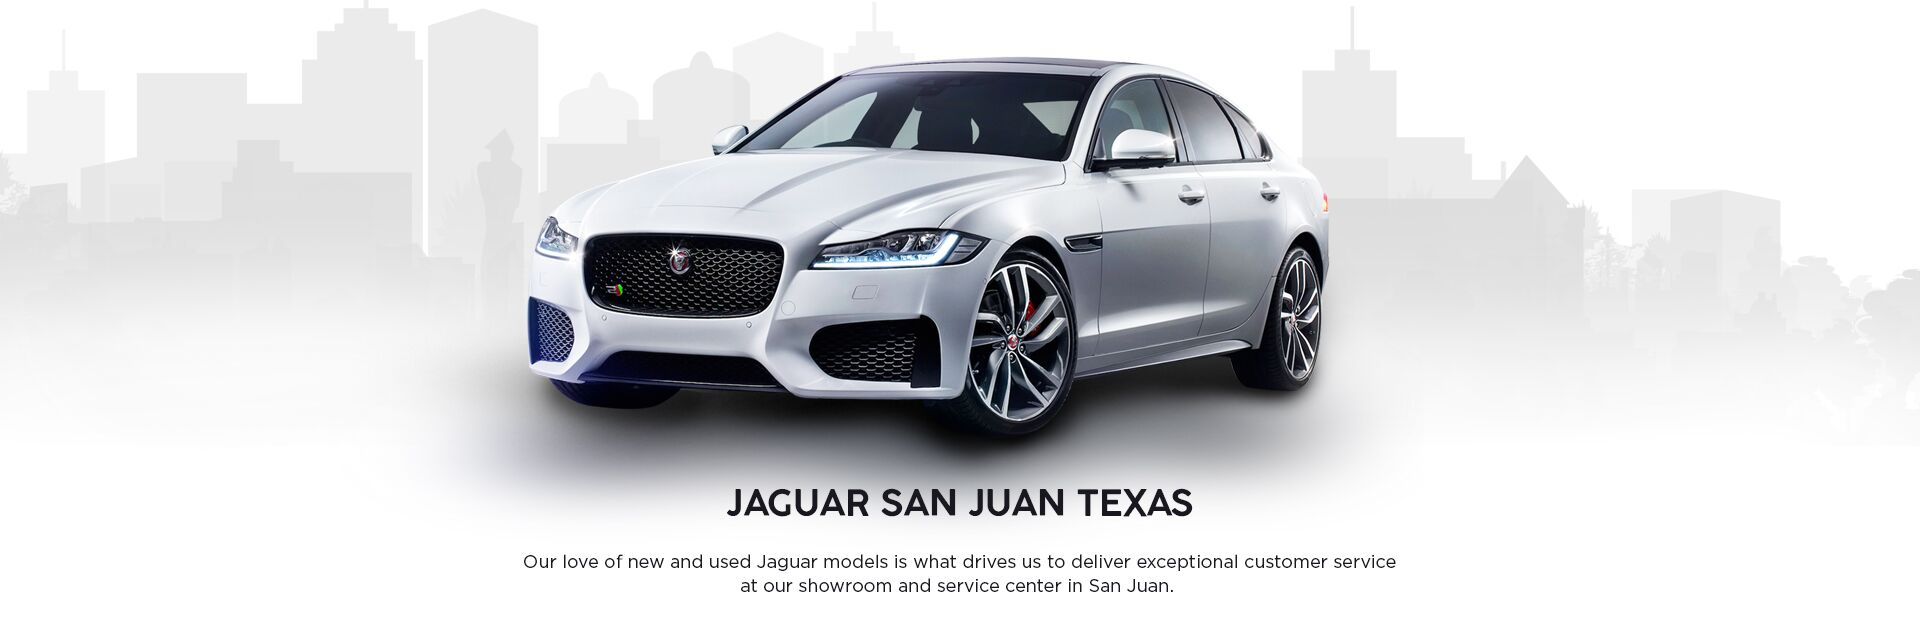 Acura jaguar land rover mercedes benz dealership san for Mercedes benz in san juan tx